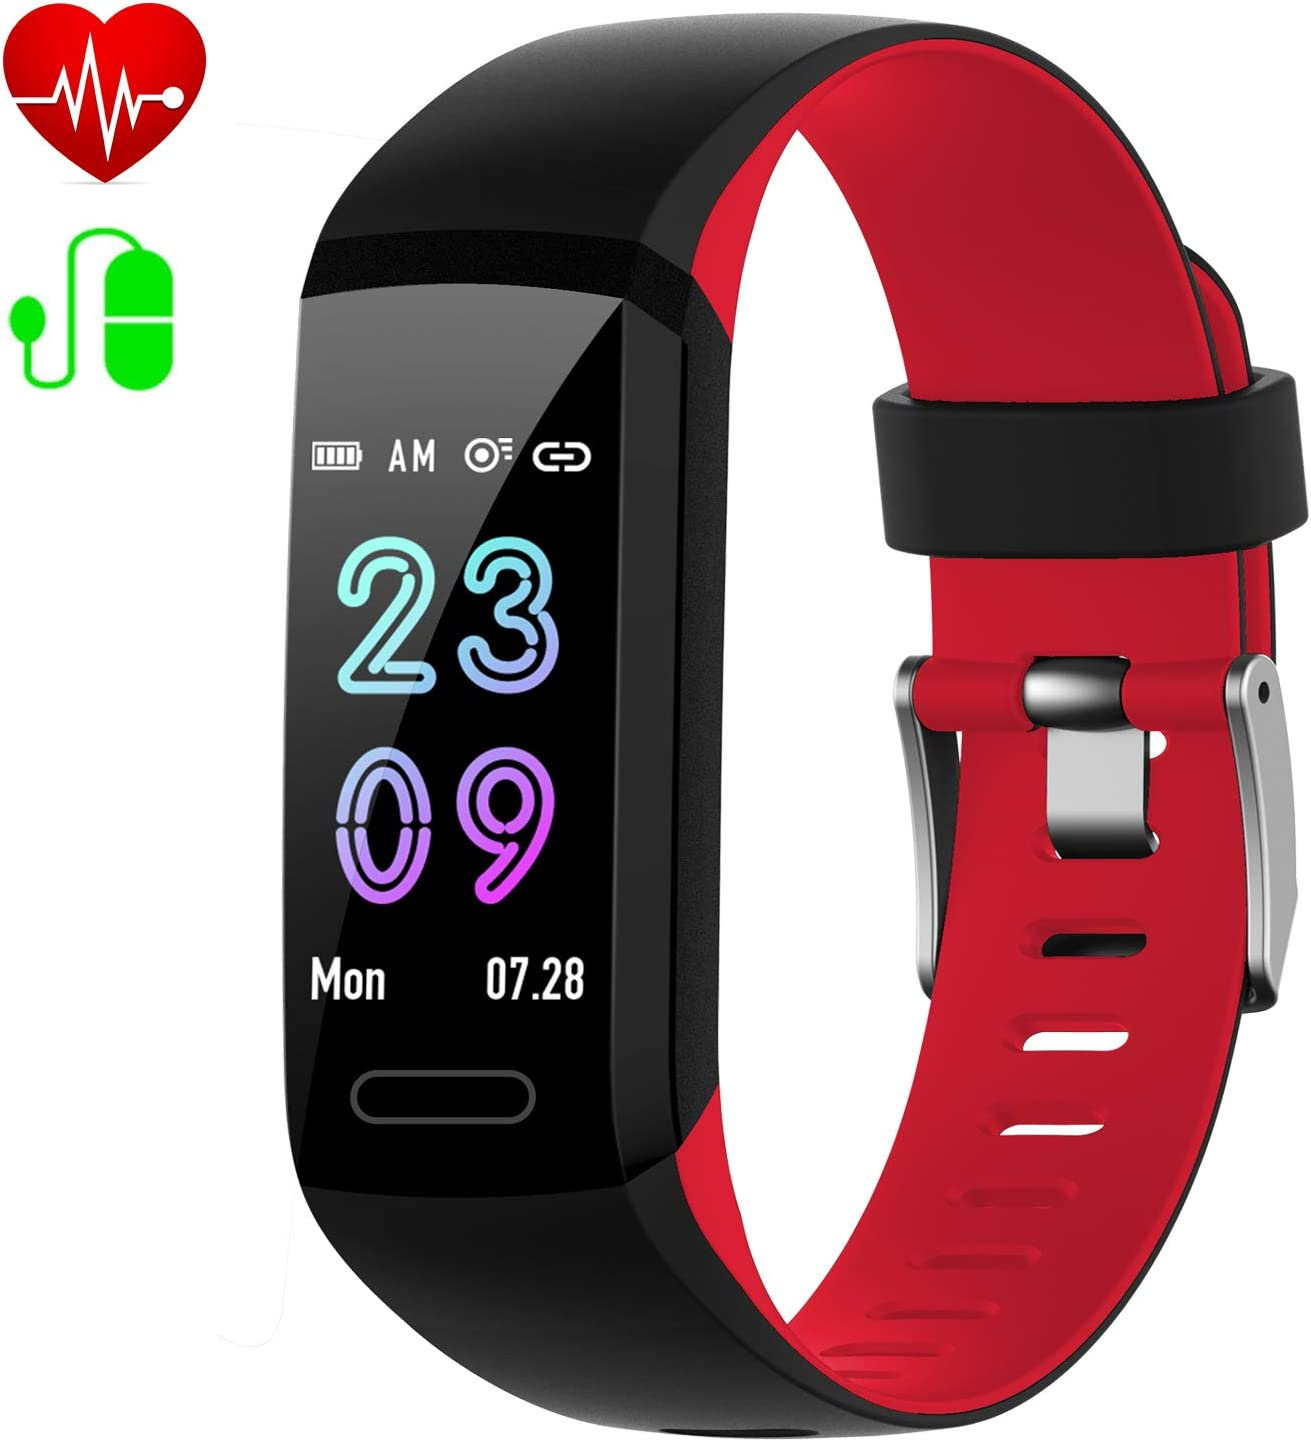 Fitness Tracker, Activity Tracker with Heart Rate Blood Pressure Sleep Monitor,IP67 Waterproof 2019 Version Android iOS Smart Watch,Pedometer Calorie Counter,Call SMS Reminder for Kids Women Men